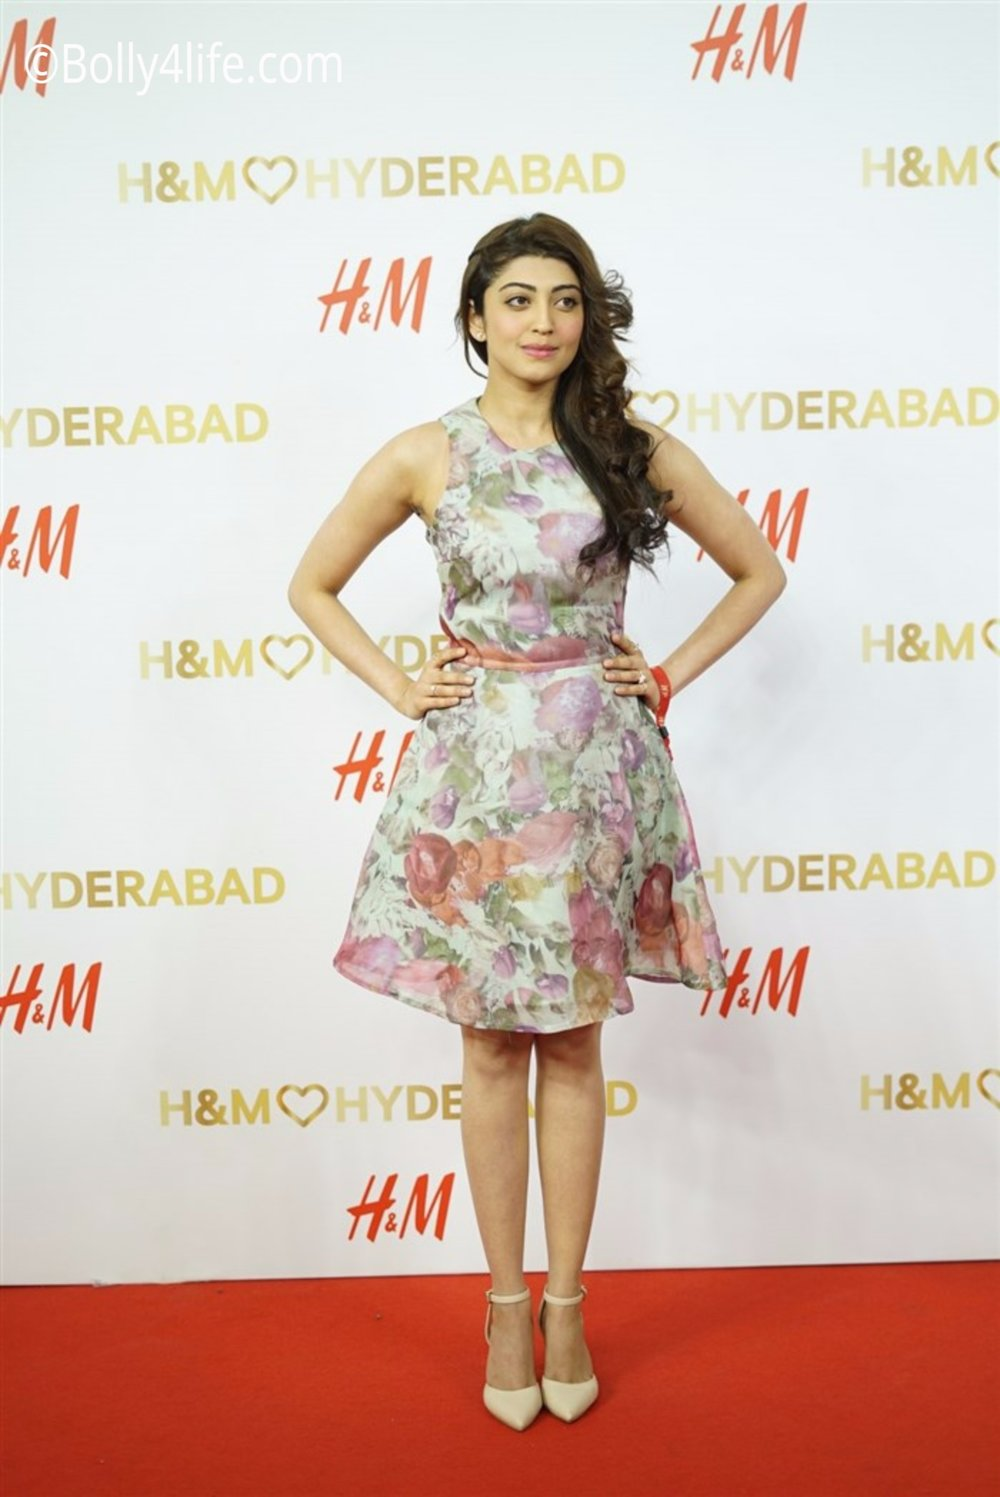 actress-hms-vip-party-inorbit-mall-hyderabad-1288943.jpg